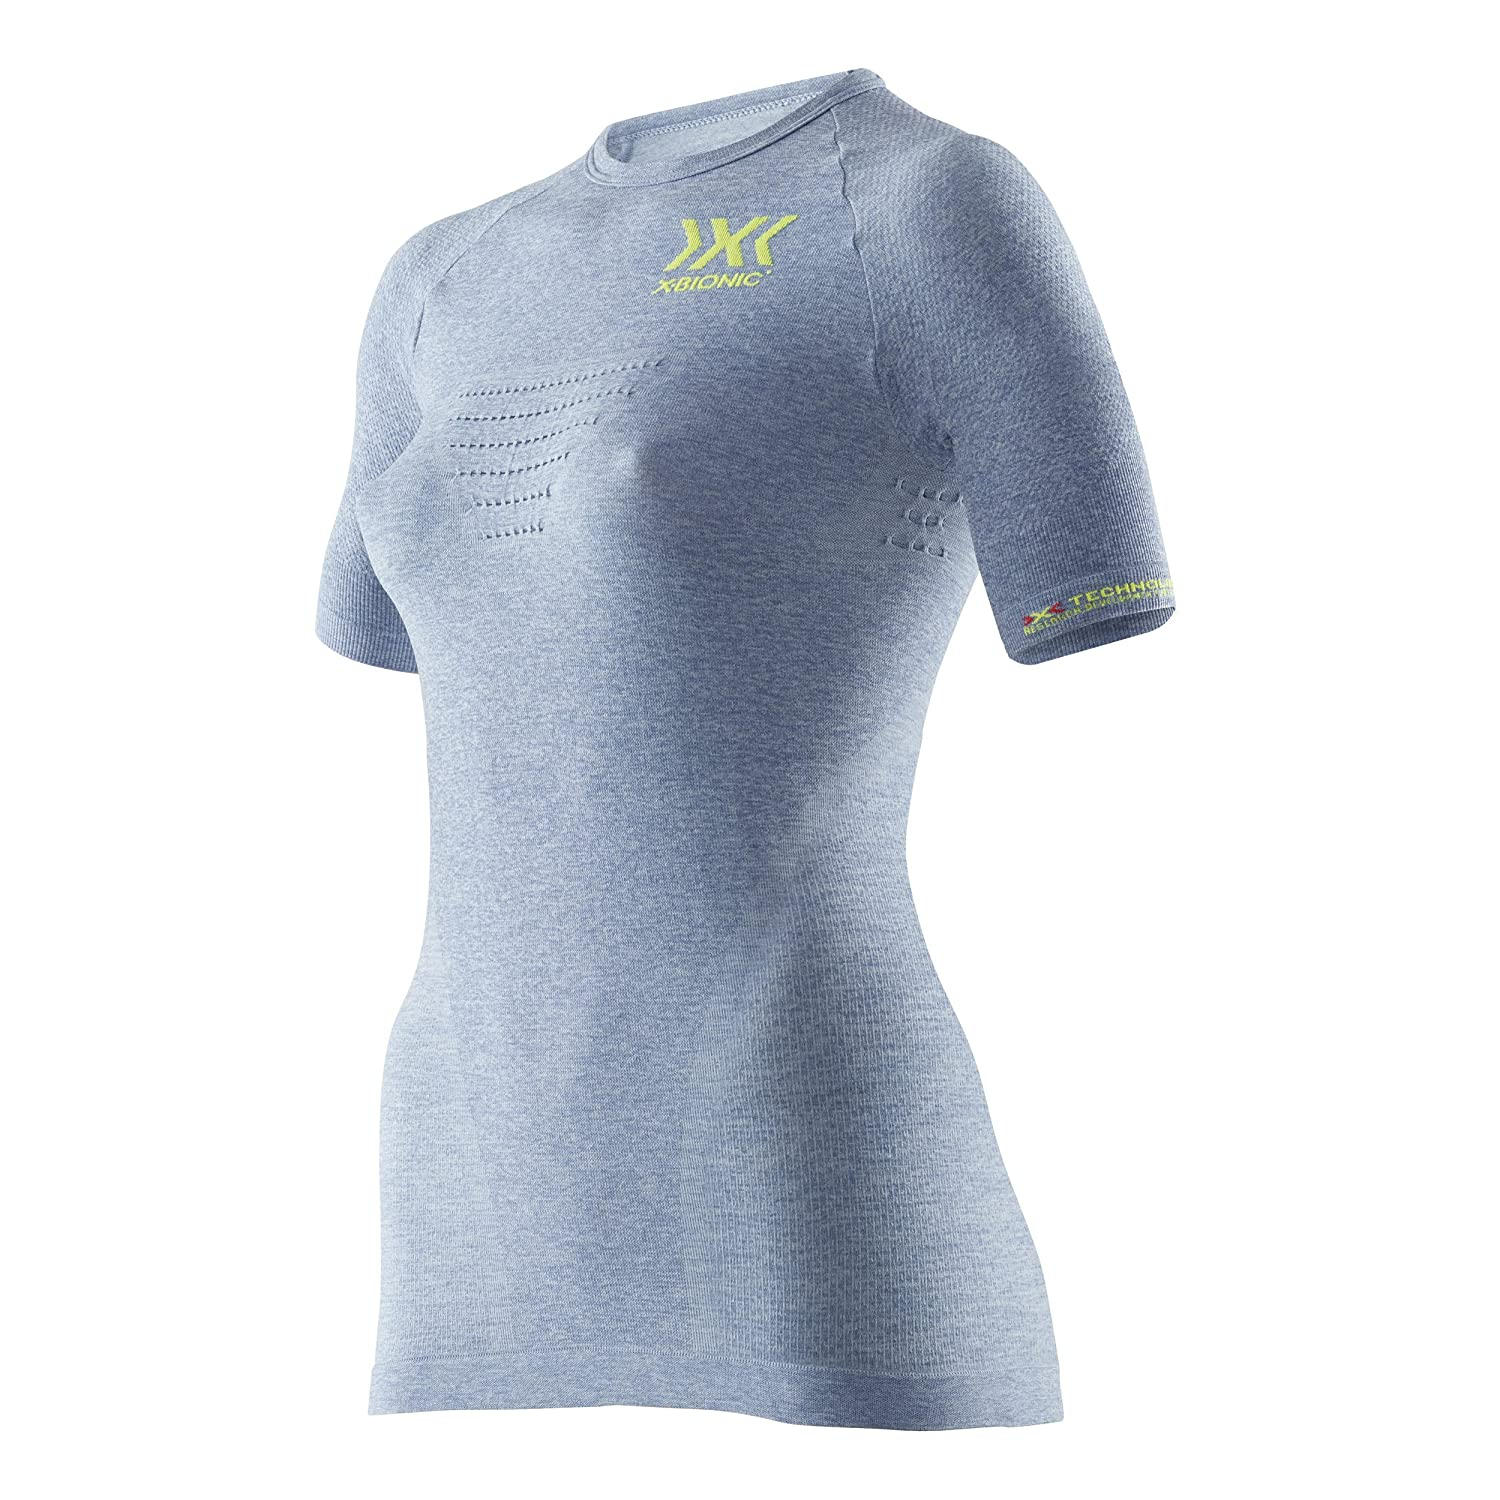 e3575c9061d12 X-Bionic Women's Running Speed Evo Melange Ow Shirt Sh_sl. Top